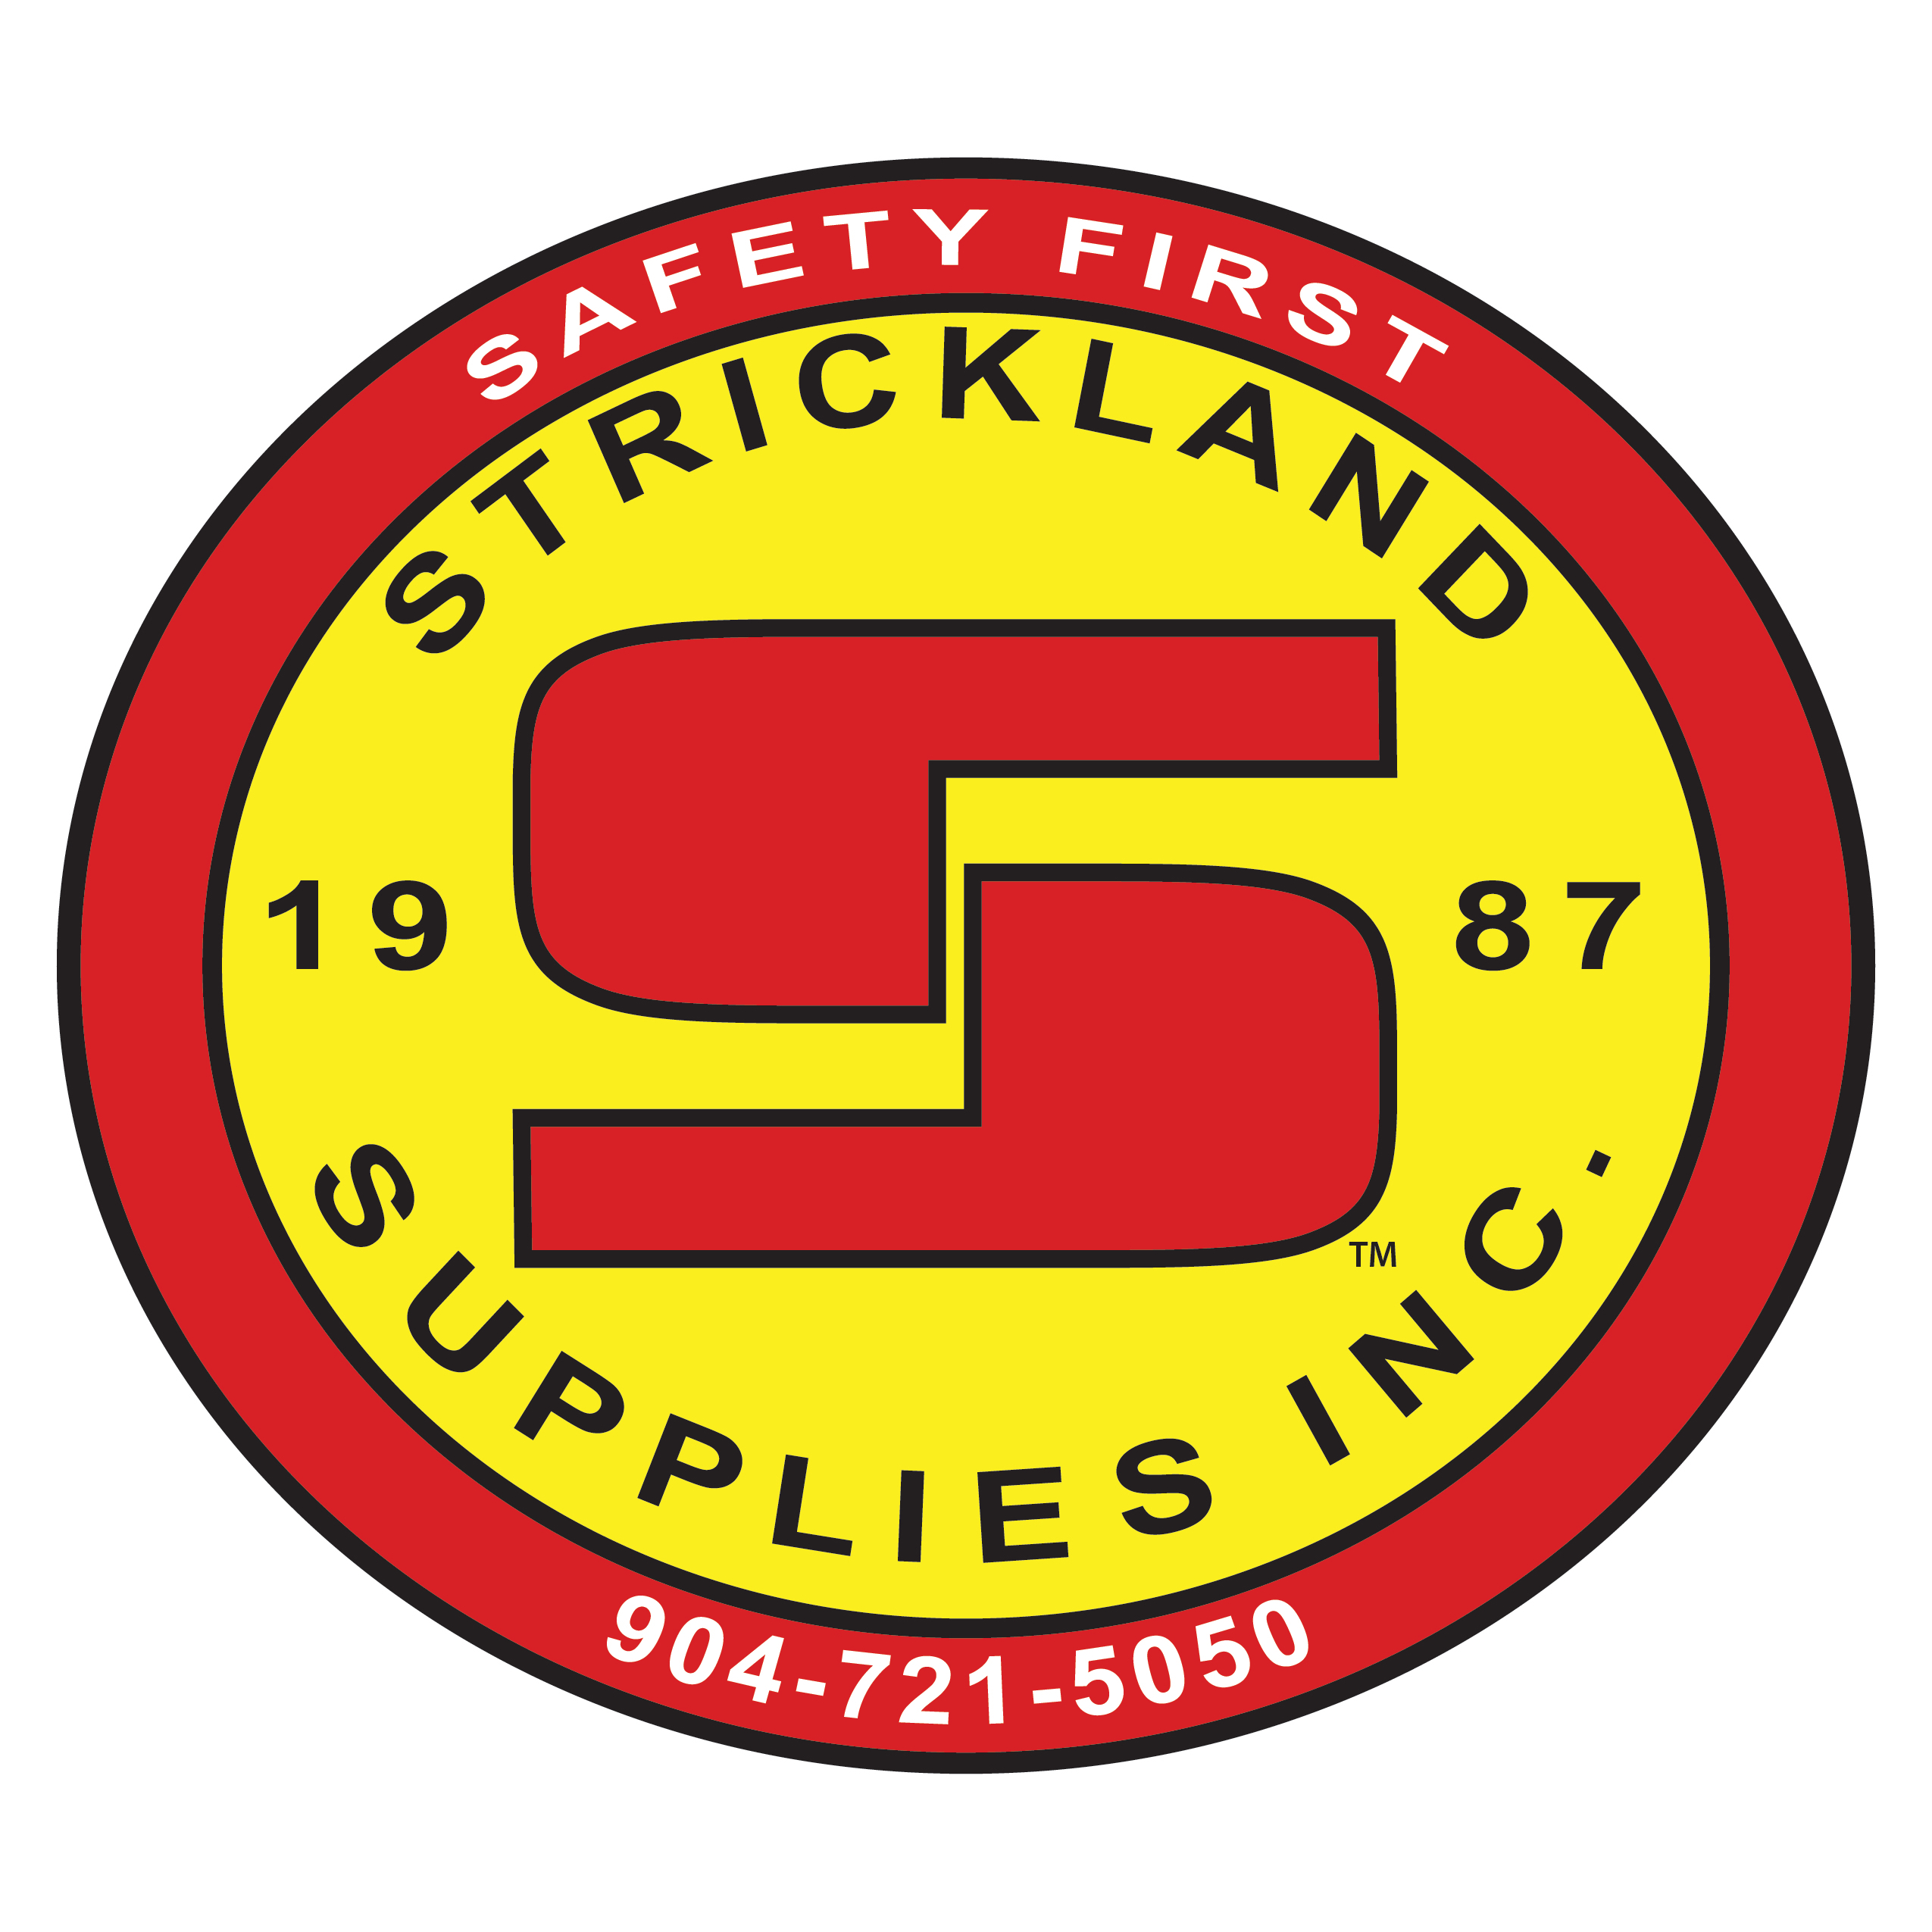 Strickland Supplies, Inc